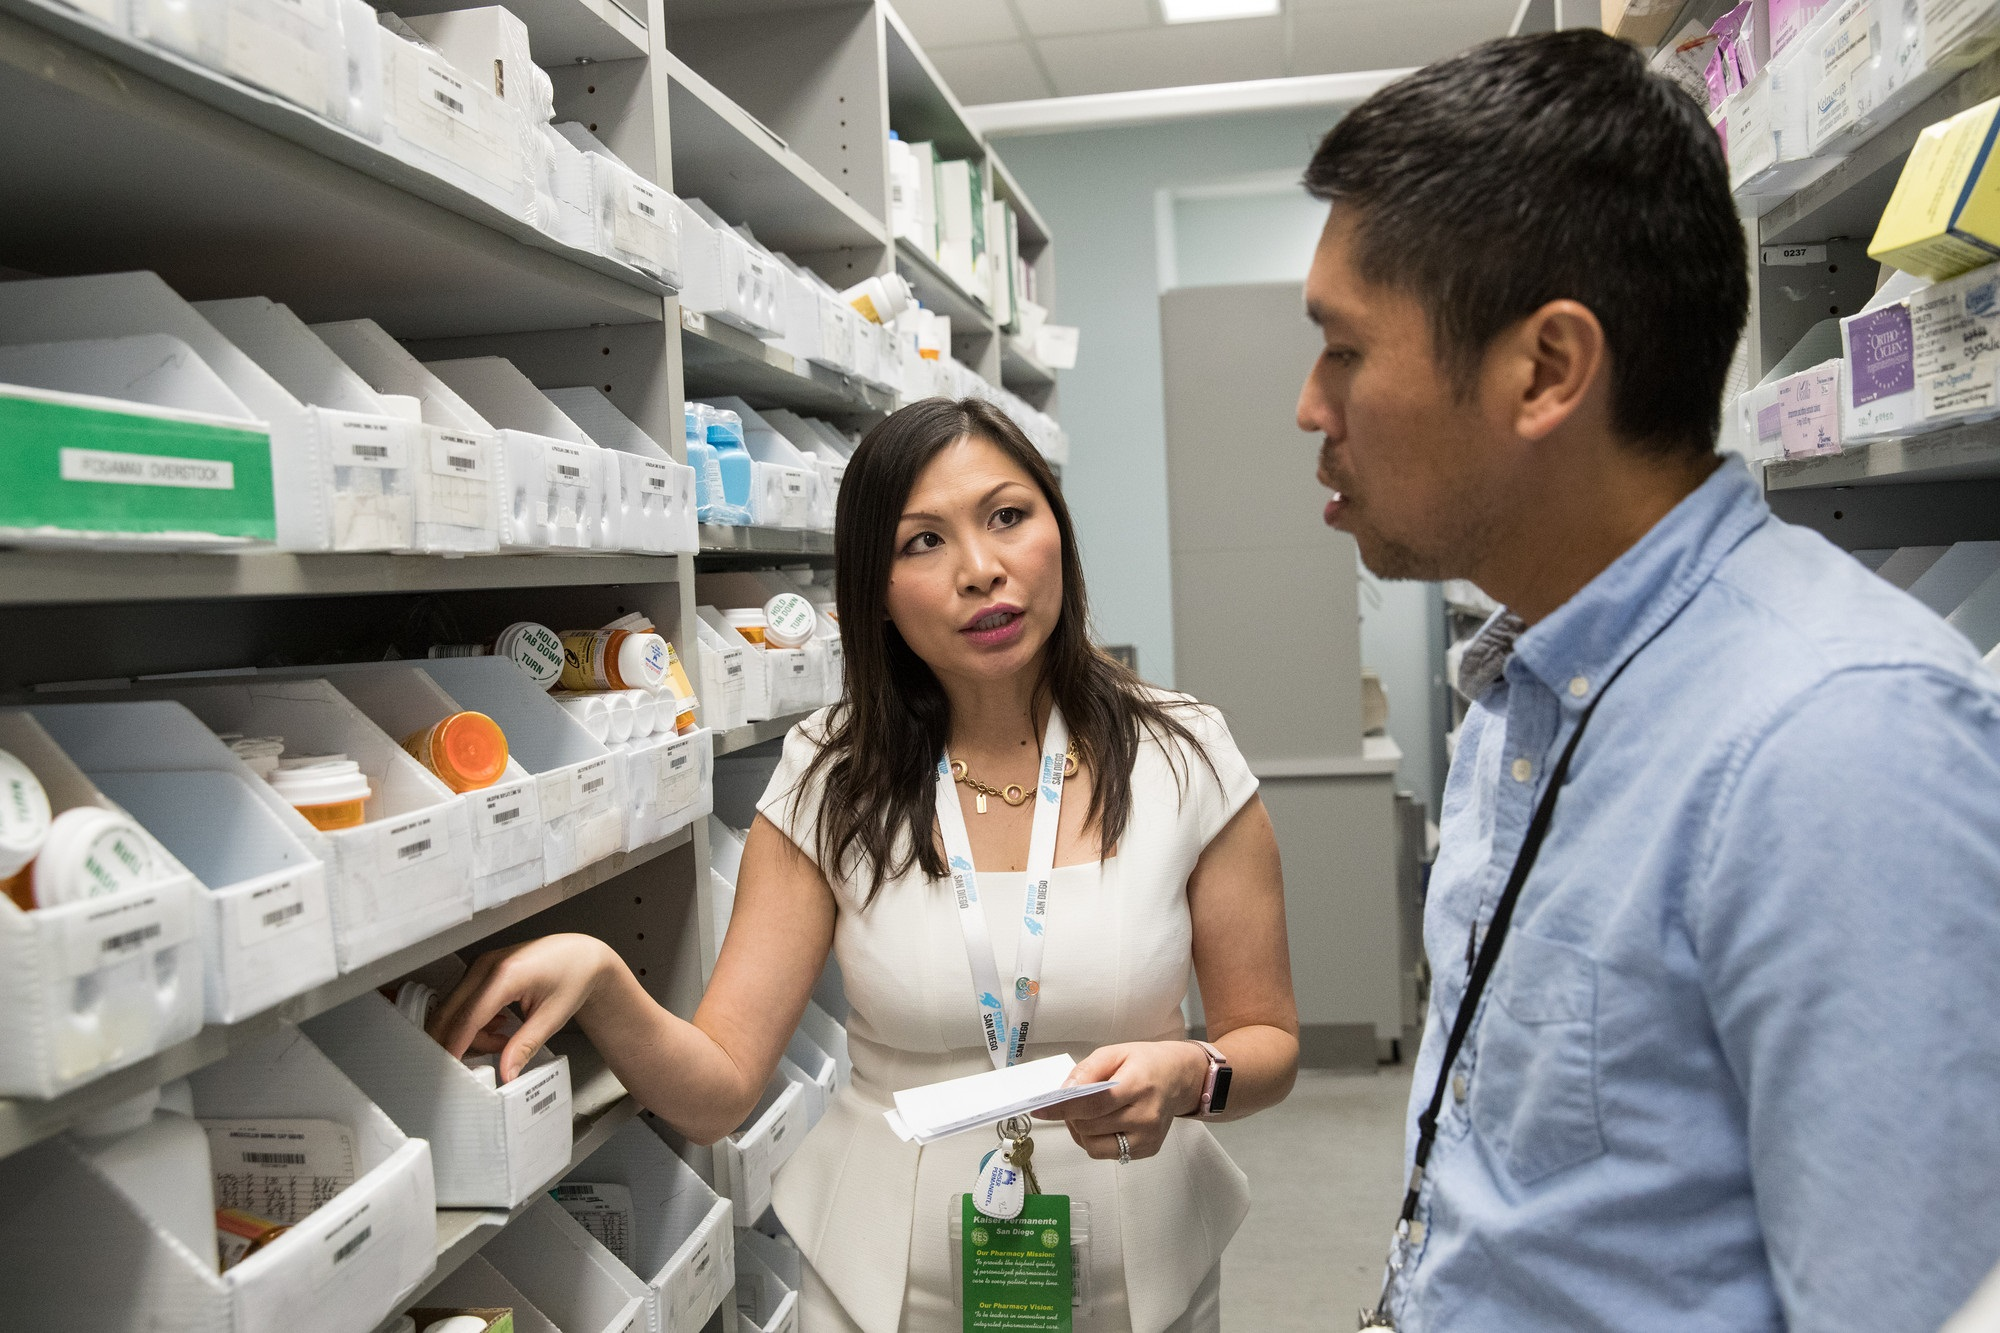 Two employees in a pharmacy supply room